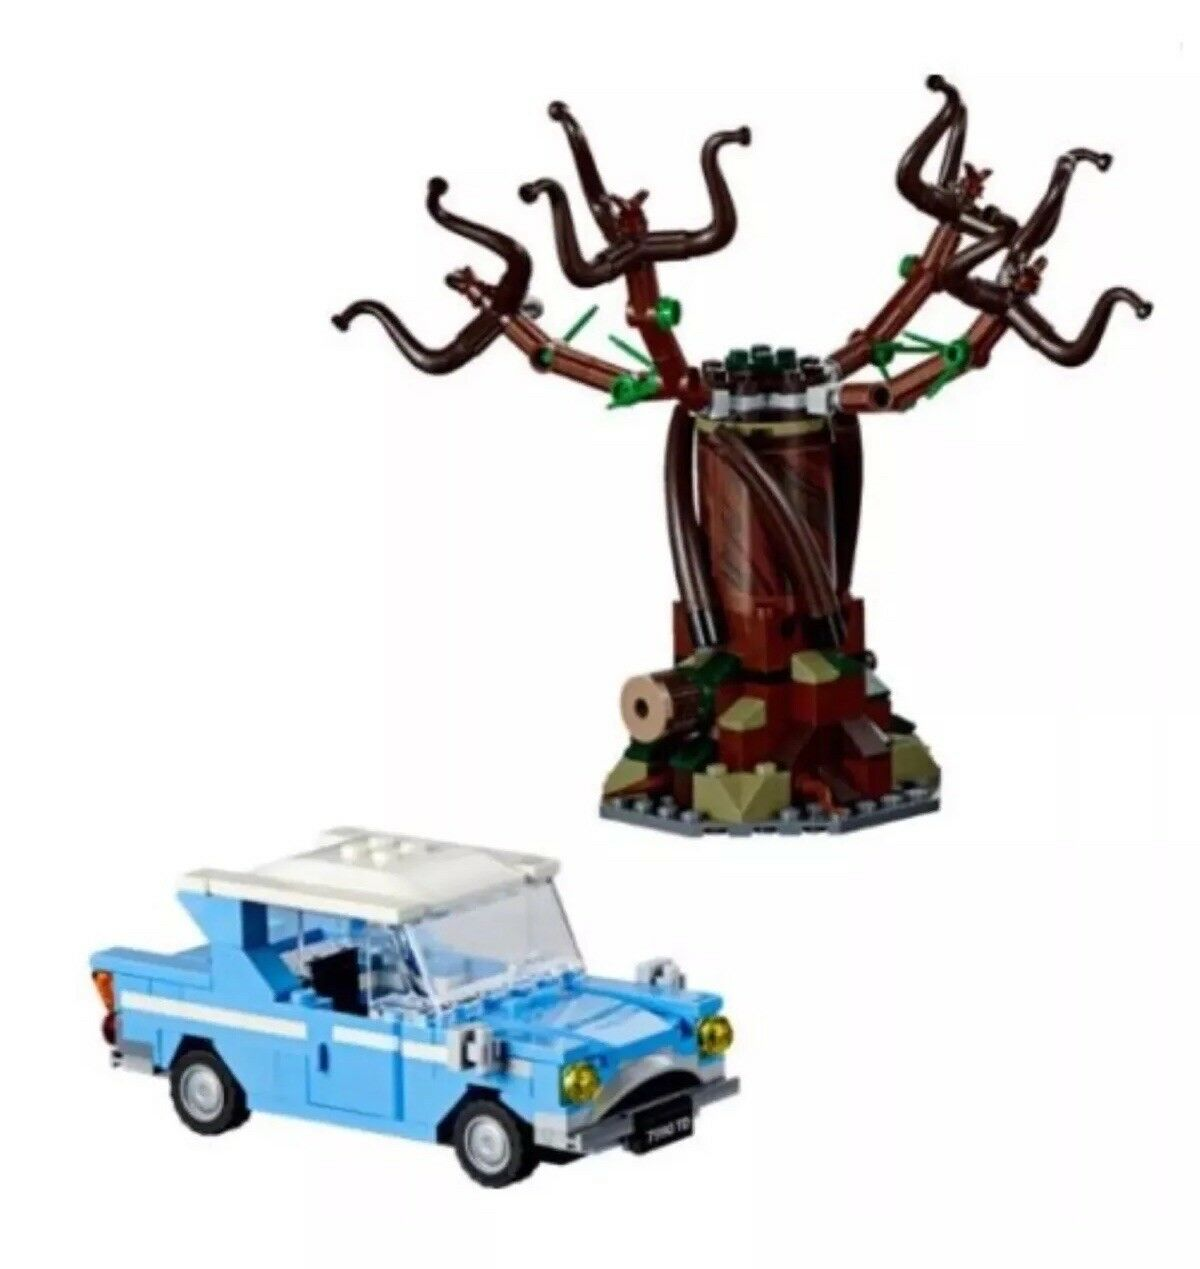 LEGO HARRY POTTER WHOMPING WILLOW & FORD ANGLIA ONLY, FROM SET 75953.